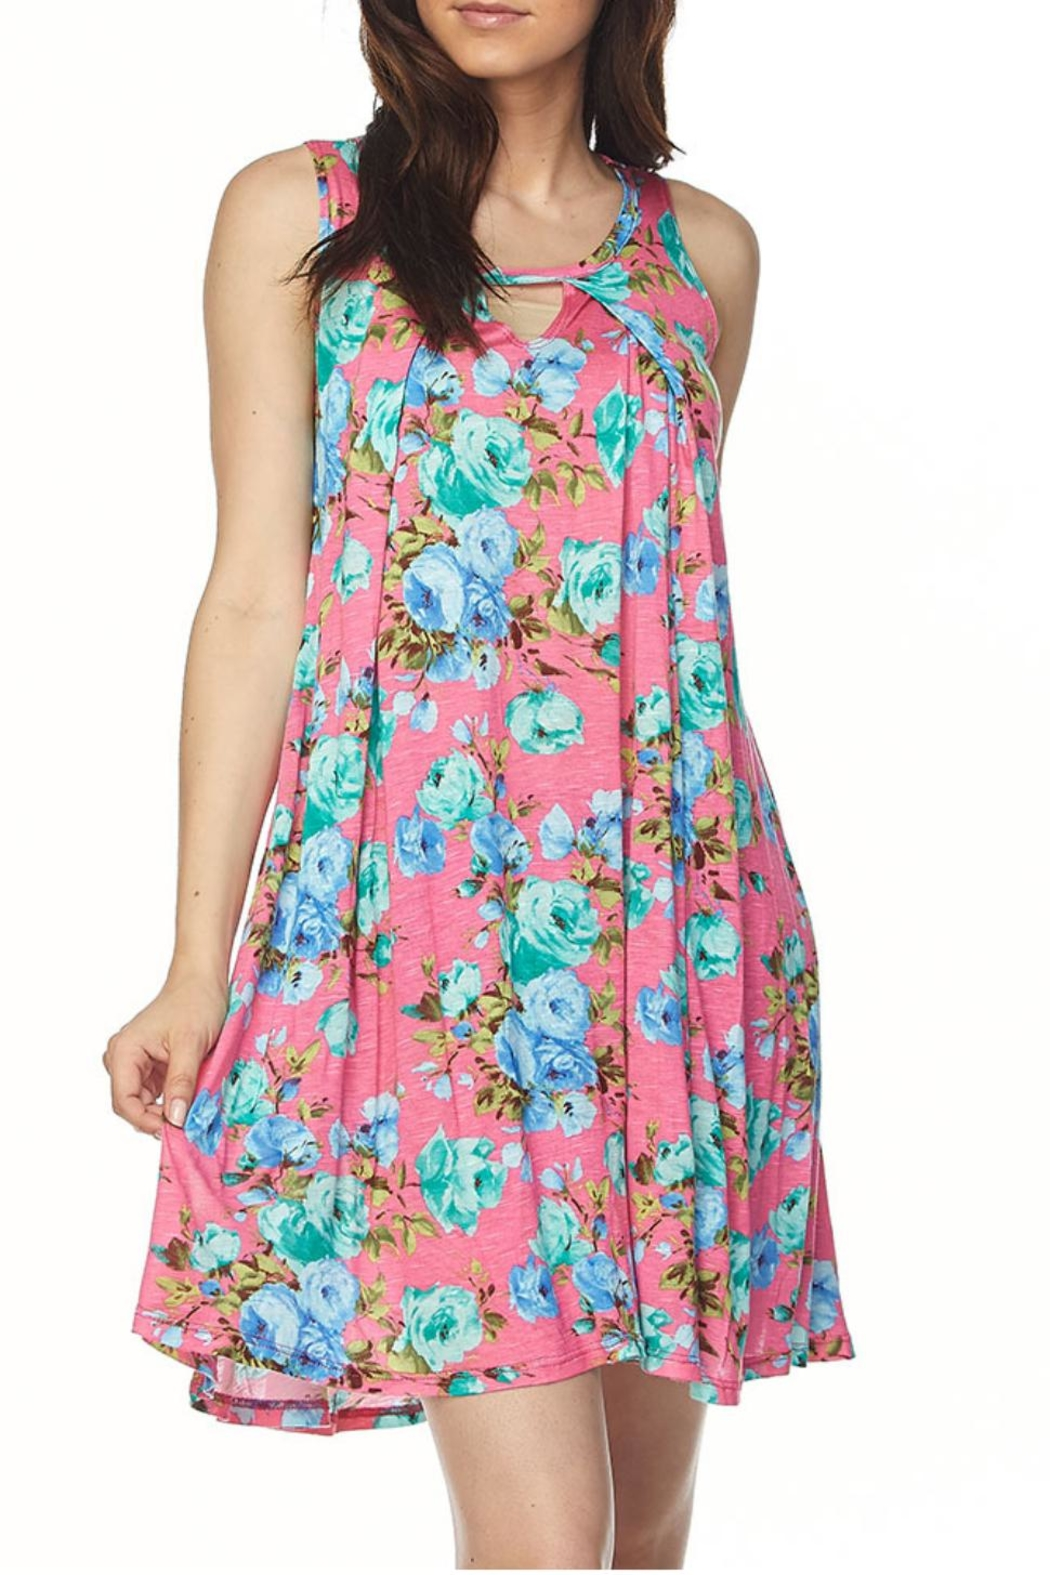 b49b72fe2bd KITTY COUTURE Floral Sleeveless Tunic from Alabama by Kitty Couture ...